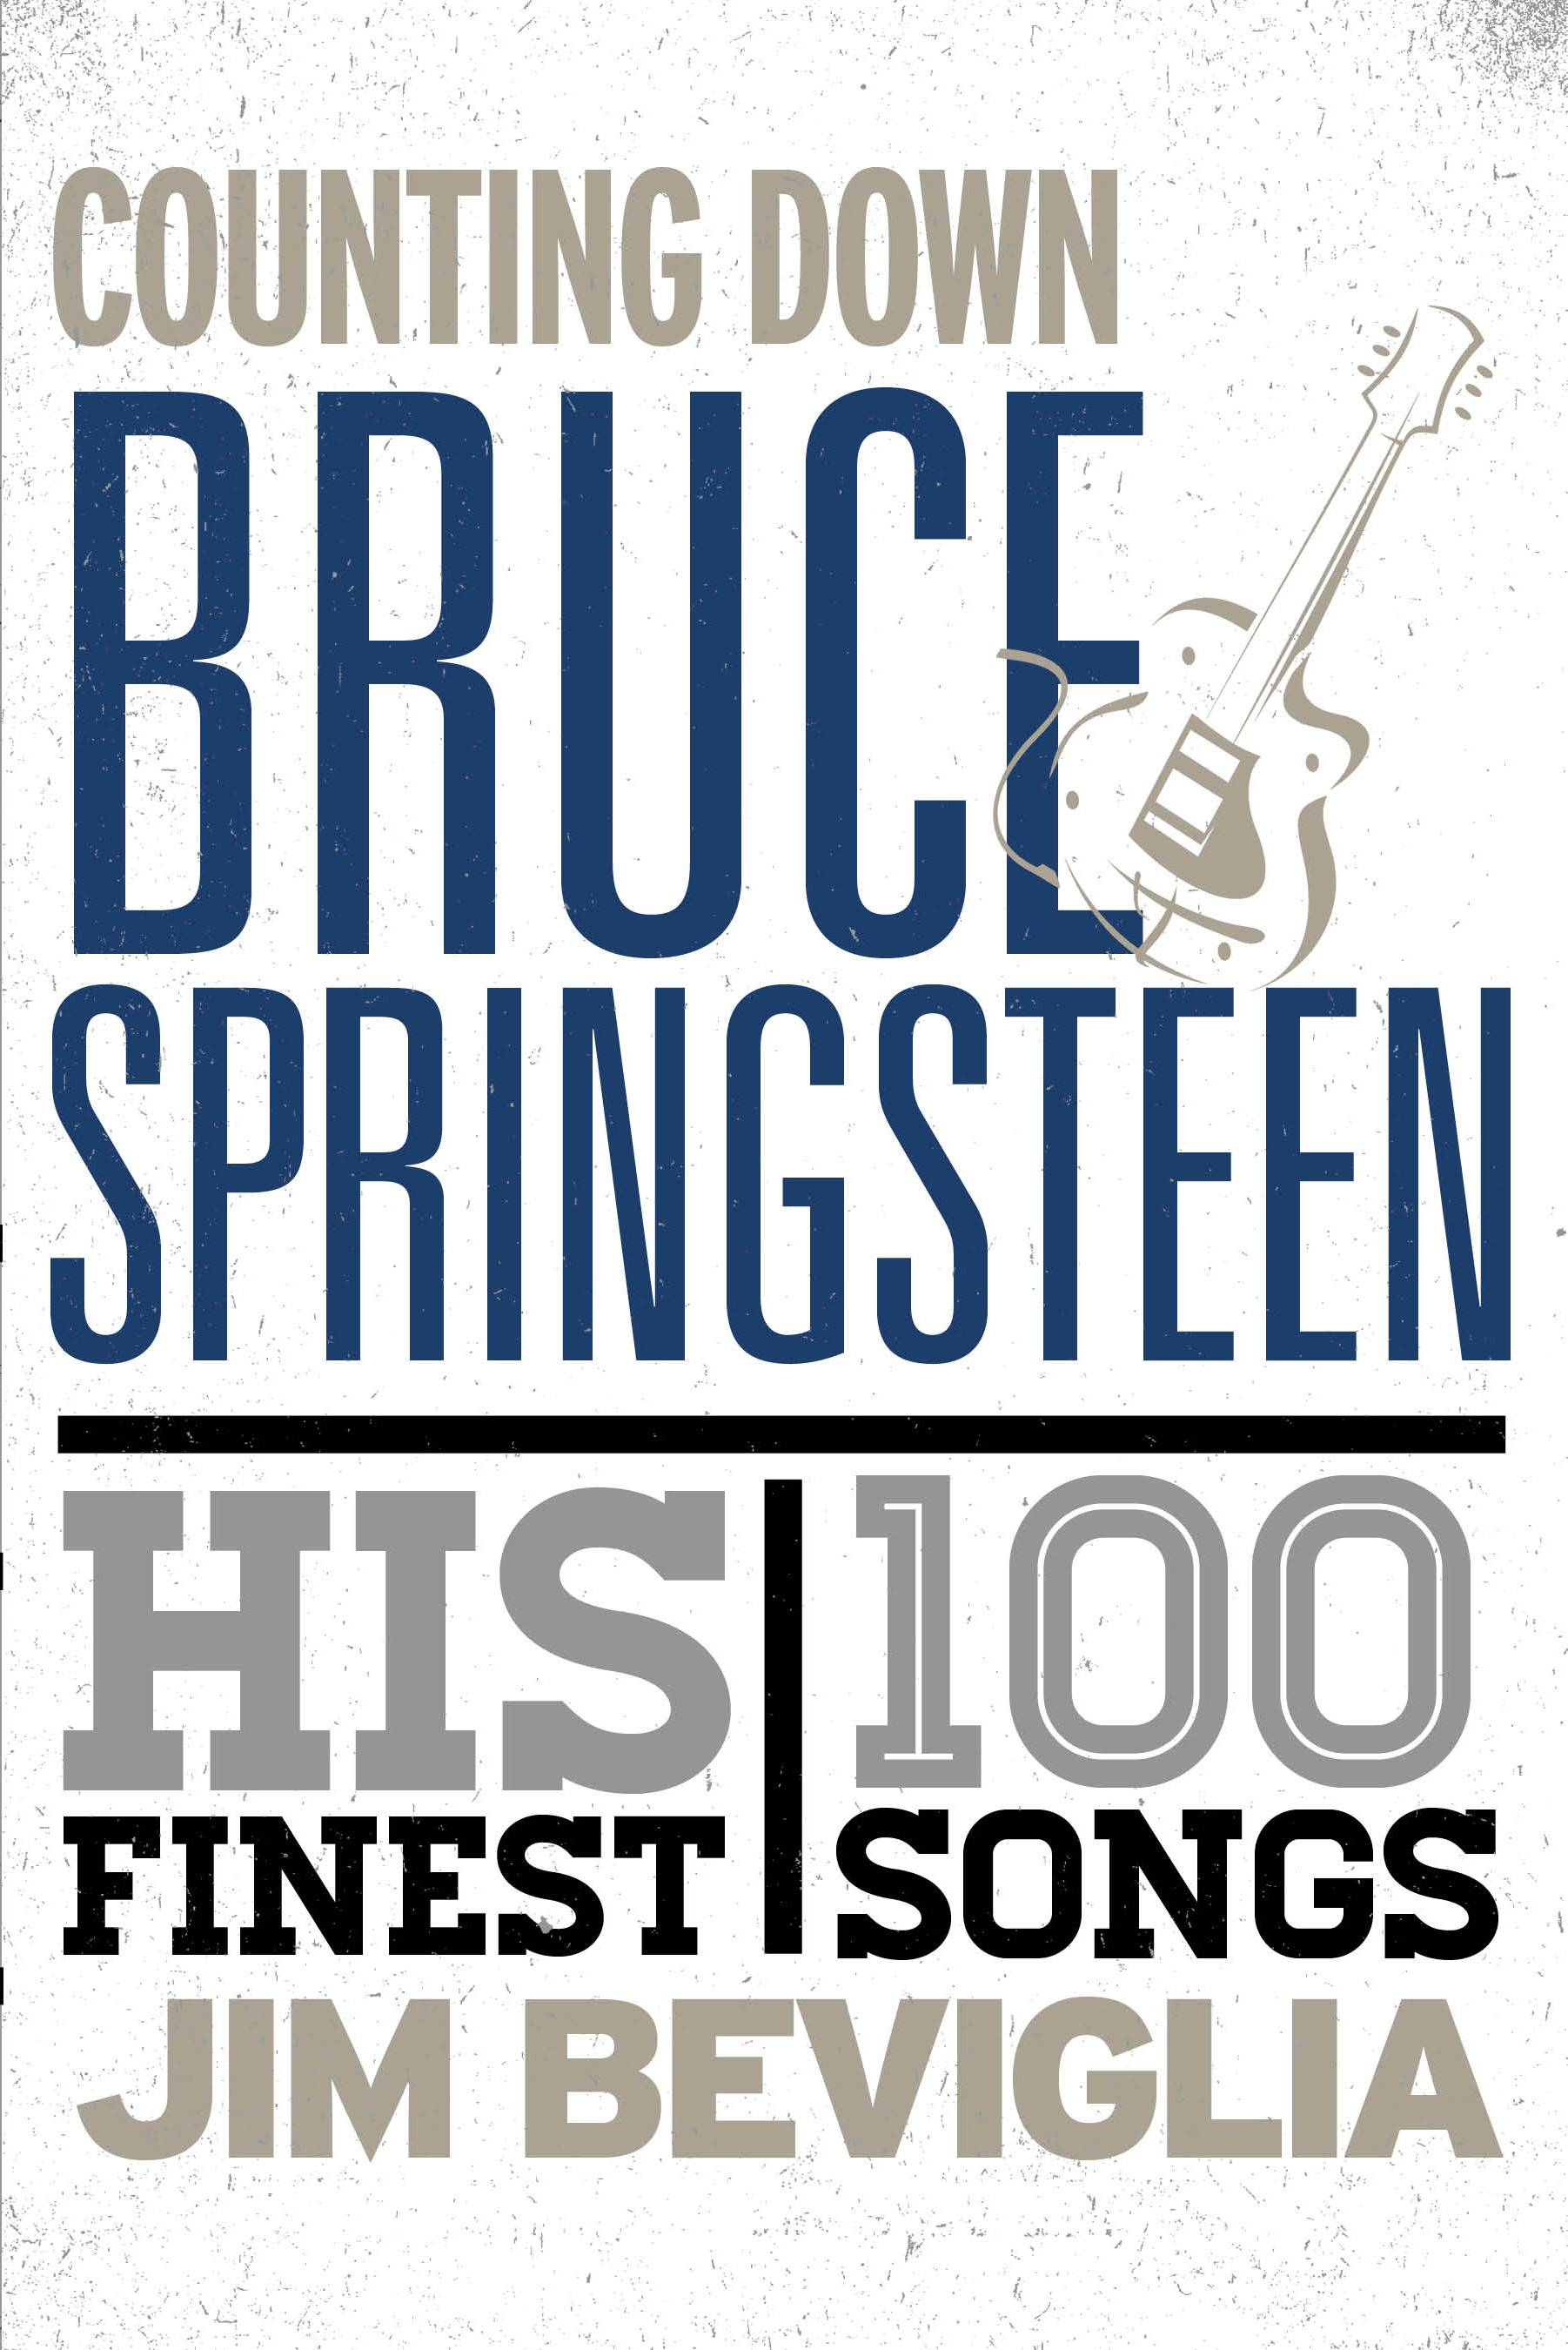 "Bruce Springsteen is unusually prolific, as examined in ""Counting Down Bruce Springsteen: His 100 Finest Songs"" by Jim Beviglia."